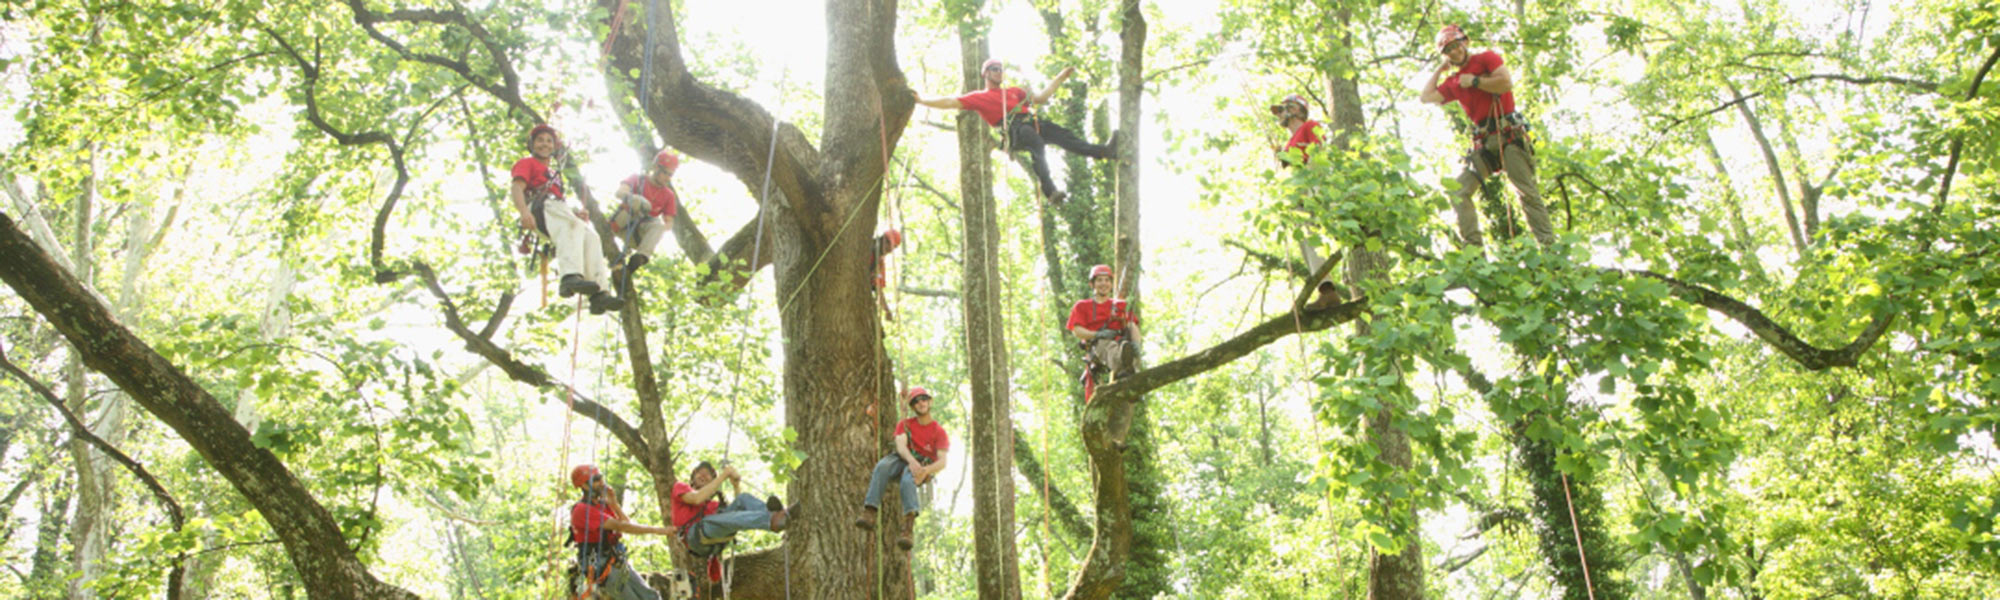 VYTC workers up in the trees.